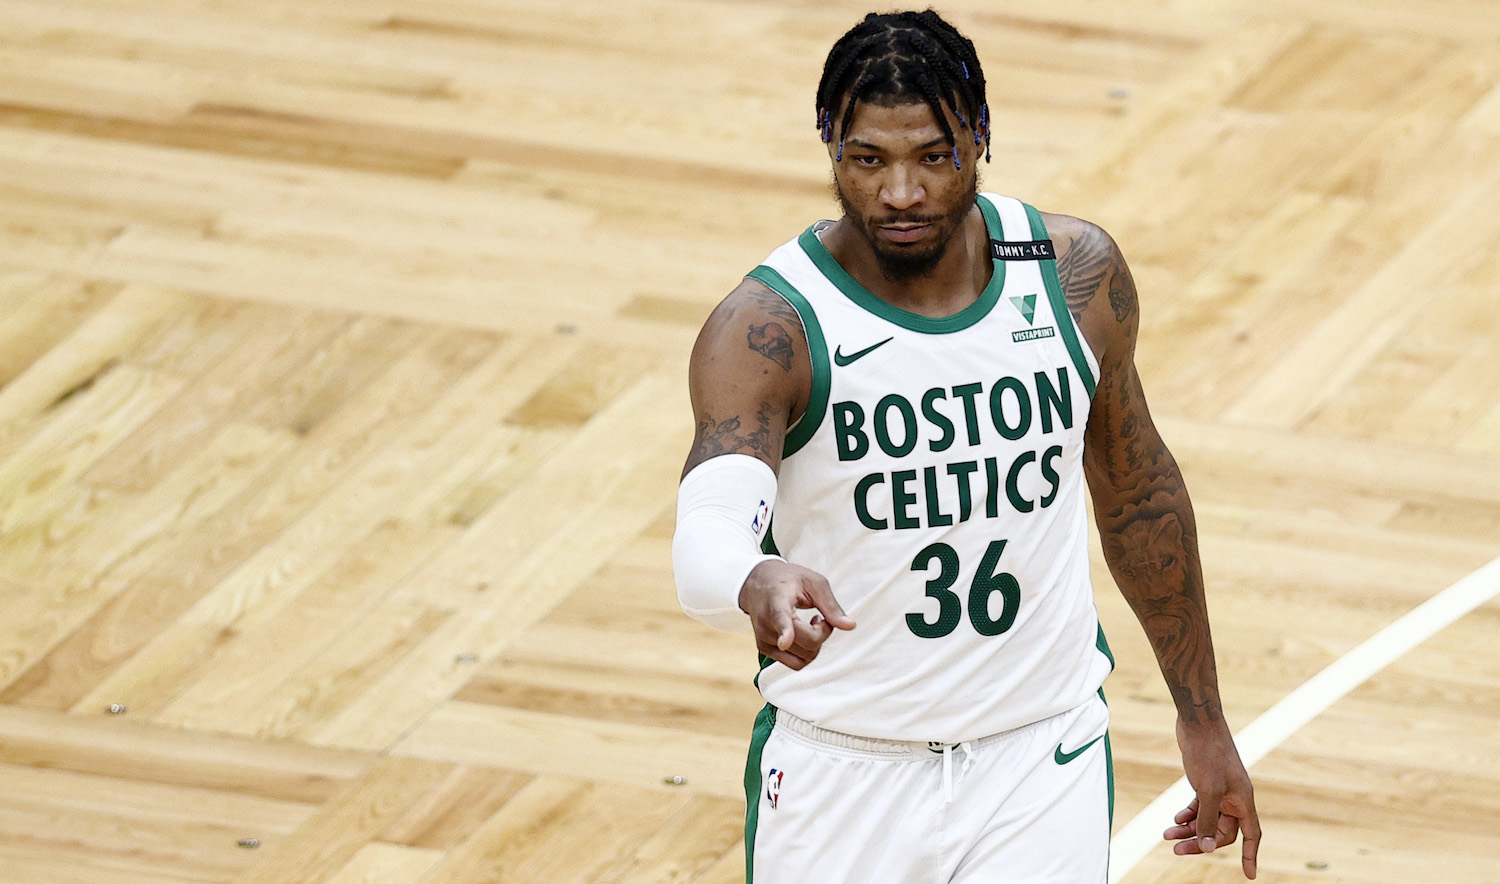 BOSTON, MASSACHUSETTS - MARCH 29: Marcus Smart #36 of the Boston Celtics reacts during the second half against the New Orleans Pelicansat TD Garden on March 29, 2021 in Boston, Massachusetts. The Pelicans defeat the Celtics 115-109. (Photo by Maddie Meyer/Getty Images)